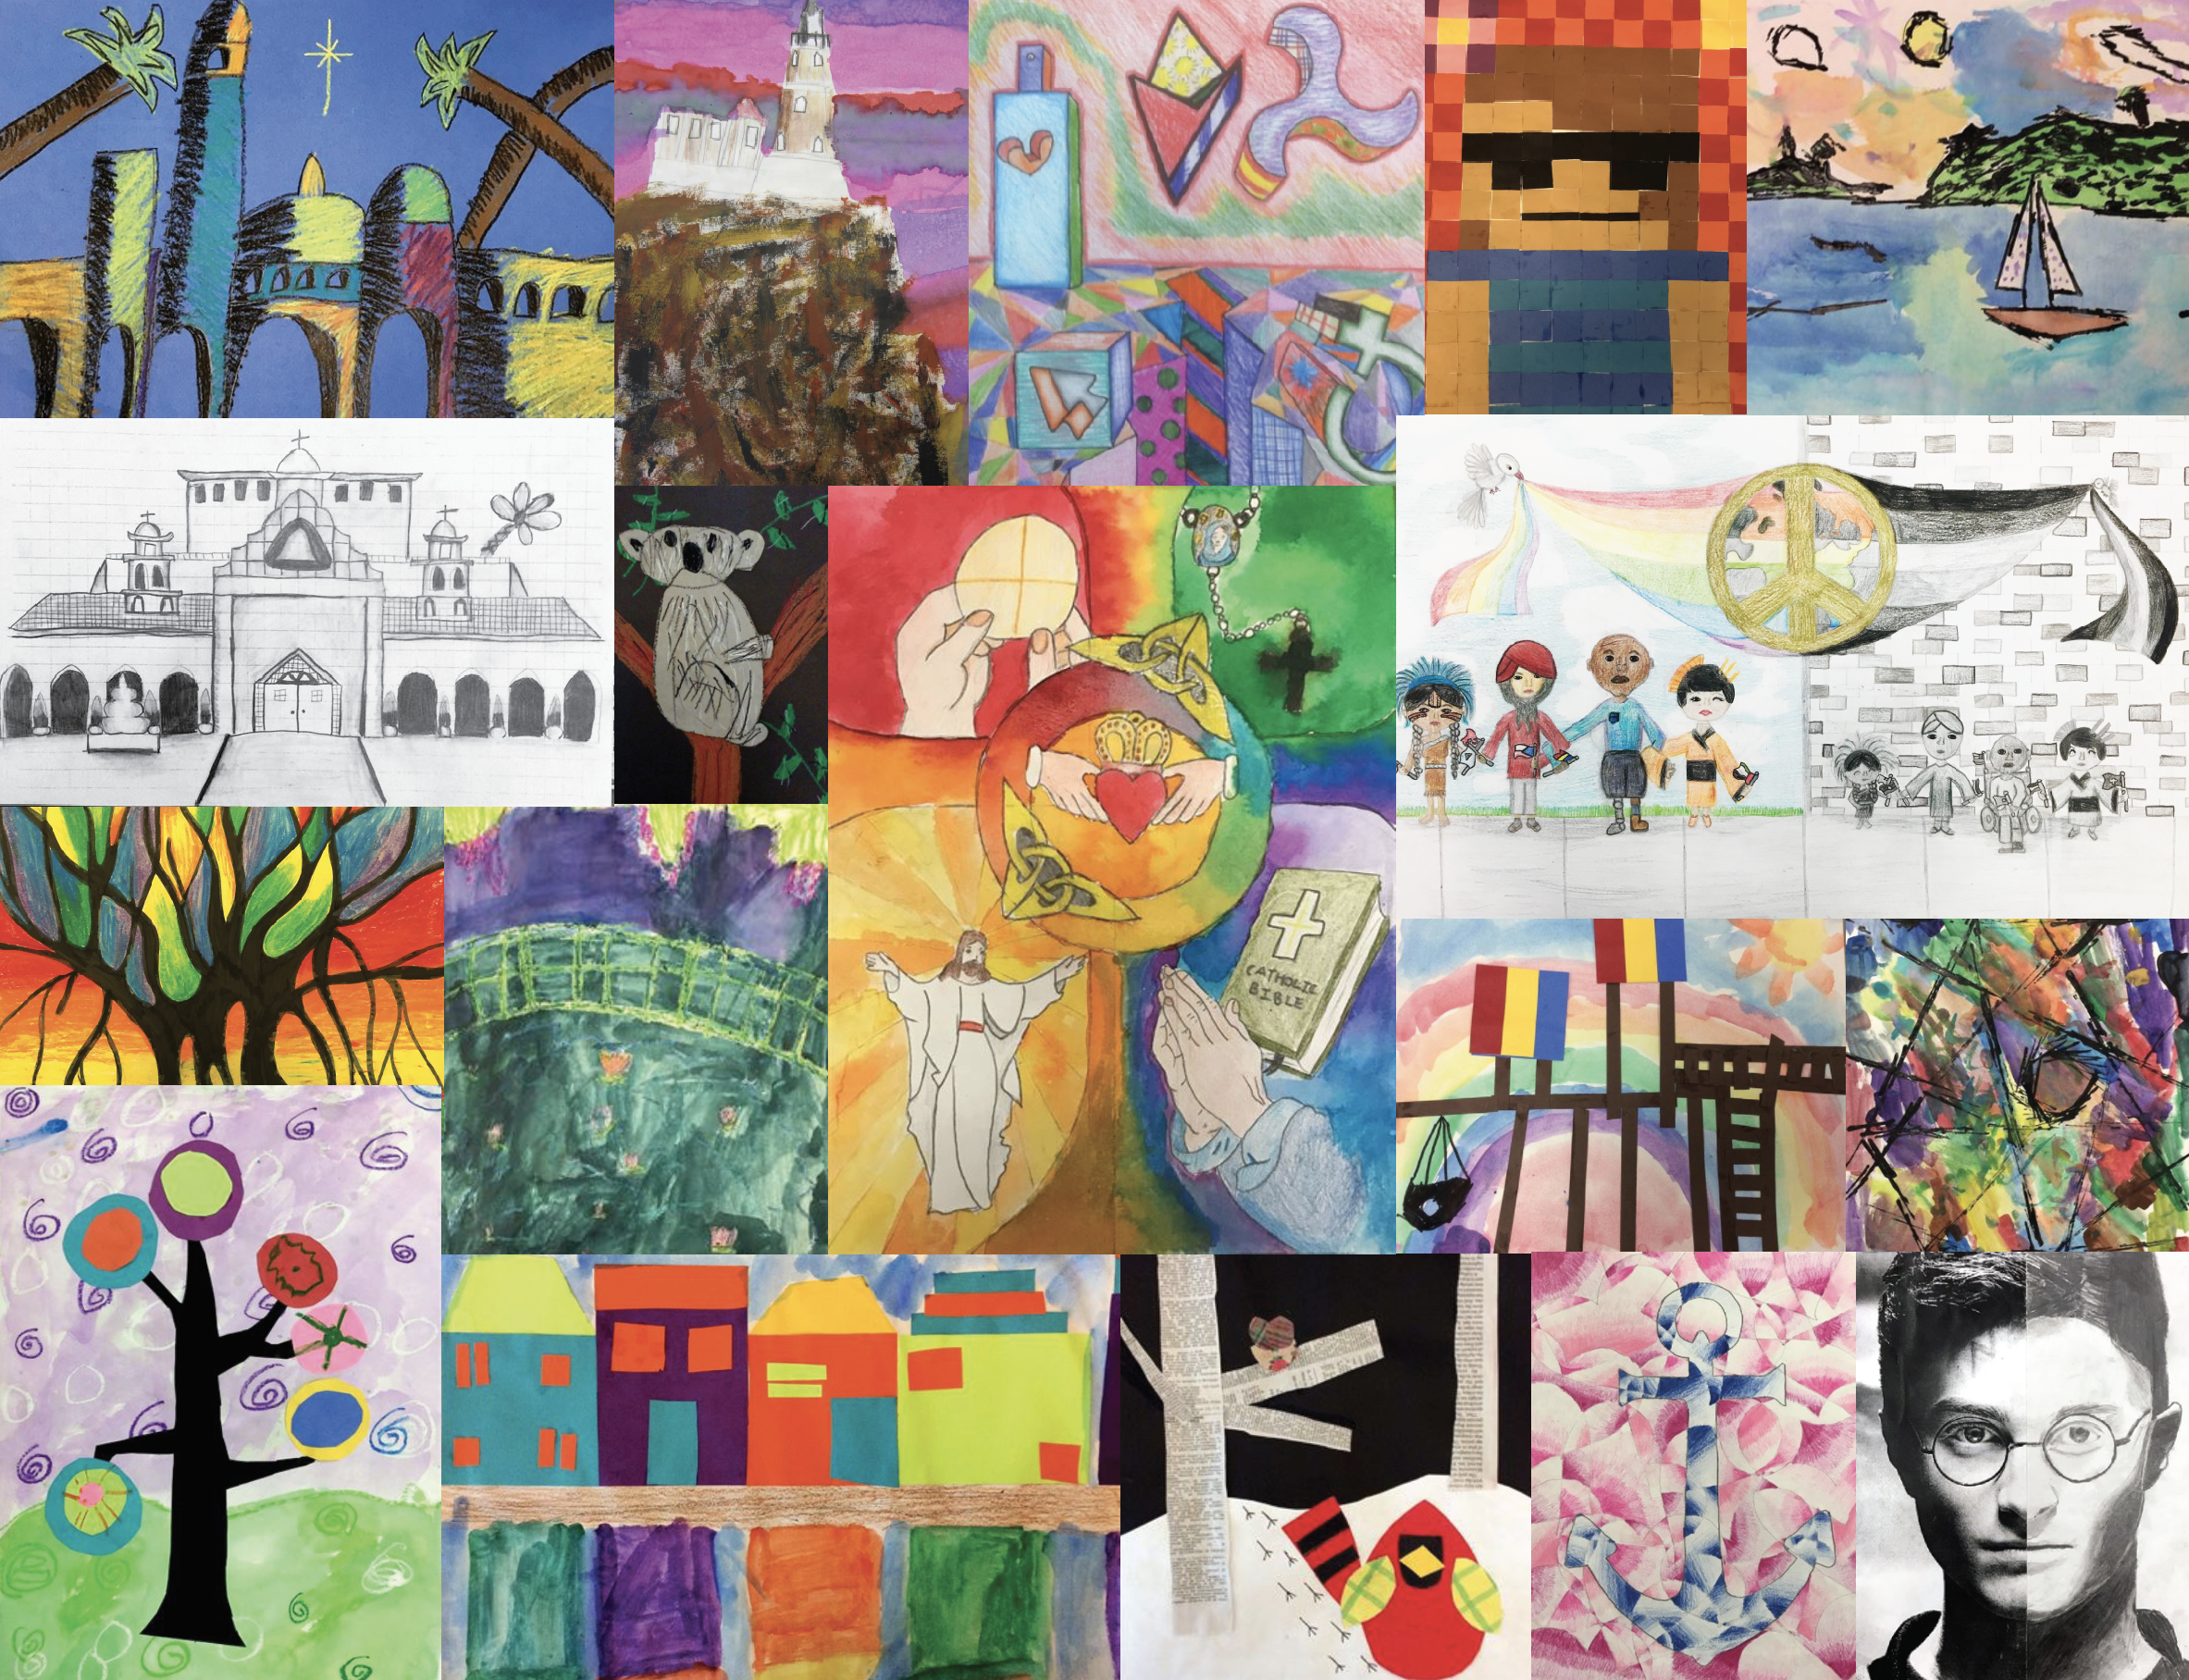 Art Curriculum - The Art Curriculum is based on the Elements and Principles of Art. Introduced in Kindergarten and reinforced and expanded on as the student grows older, the curriculum is an ongoing and sequential process. Materials become more sophisticated as students learn and practice new techniques. Increasingly complex concepts are added, allowing students to build on prior skills and knowledge. Technology is utilized as a teaching tool throughout the curriculum and used as an art medium in middle school. When possible, projects are created using an interdisciplinary approach that requires flexibility and frequent development of new projects that will incorporate the classroom teacher's changing curriculum and Art Standards for each grade level. Everything is designed to build enthusiasm for the subject that celebrates creativity and self-expression!